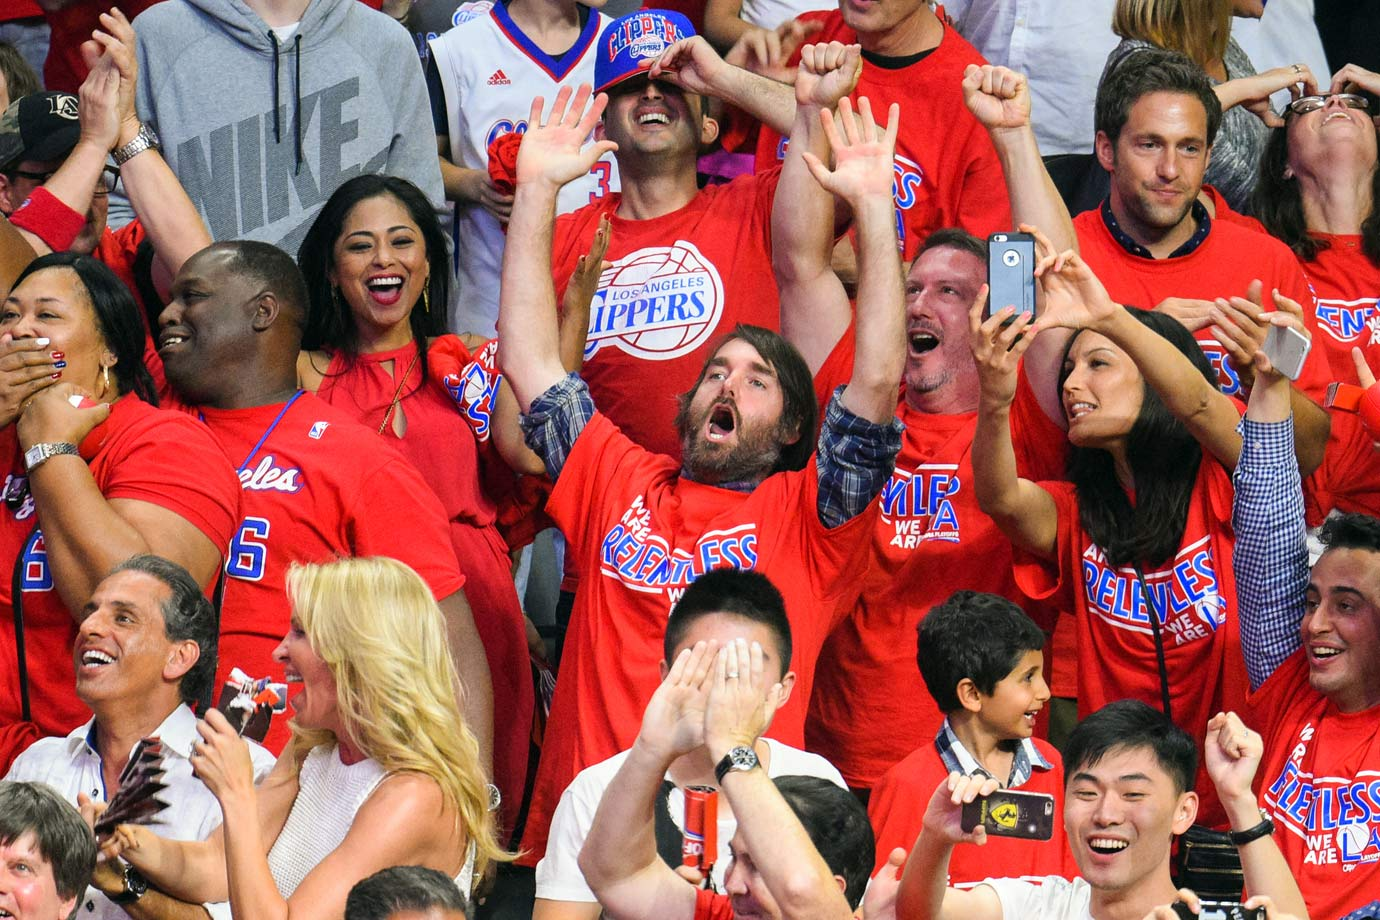 May 2, 2015: Los Angeles Clippers vs. San Antonio Spurs at Staples Center in Los Angeles — Western Conference Quarterfinals, Game 7